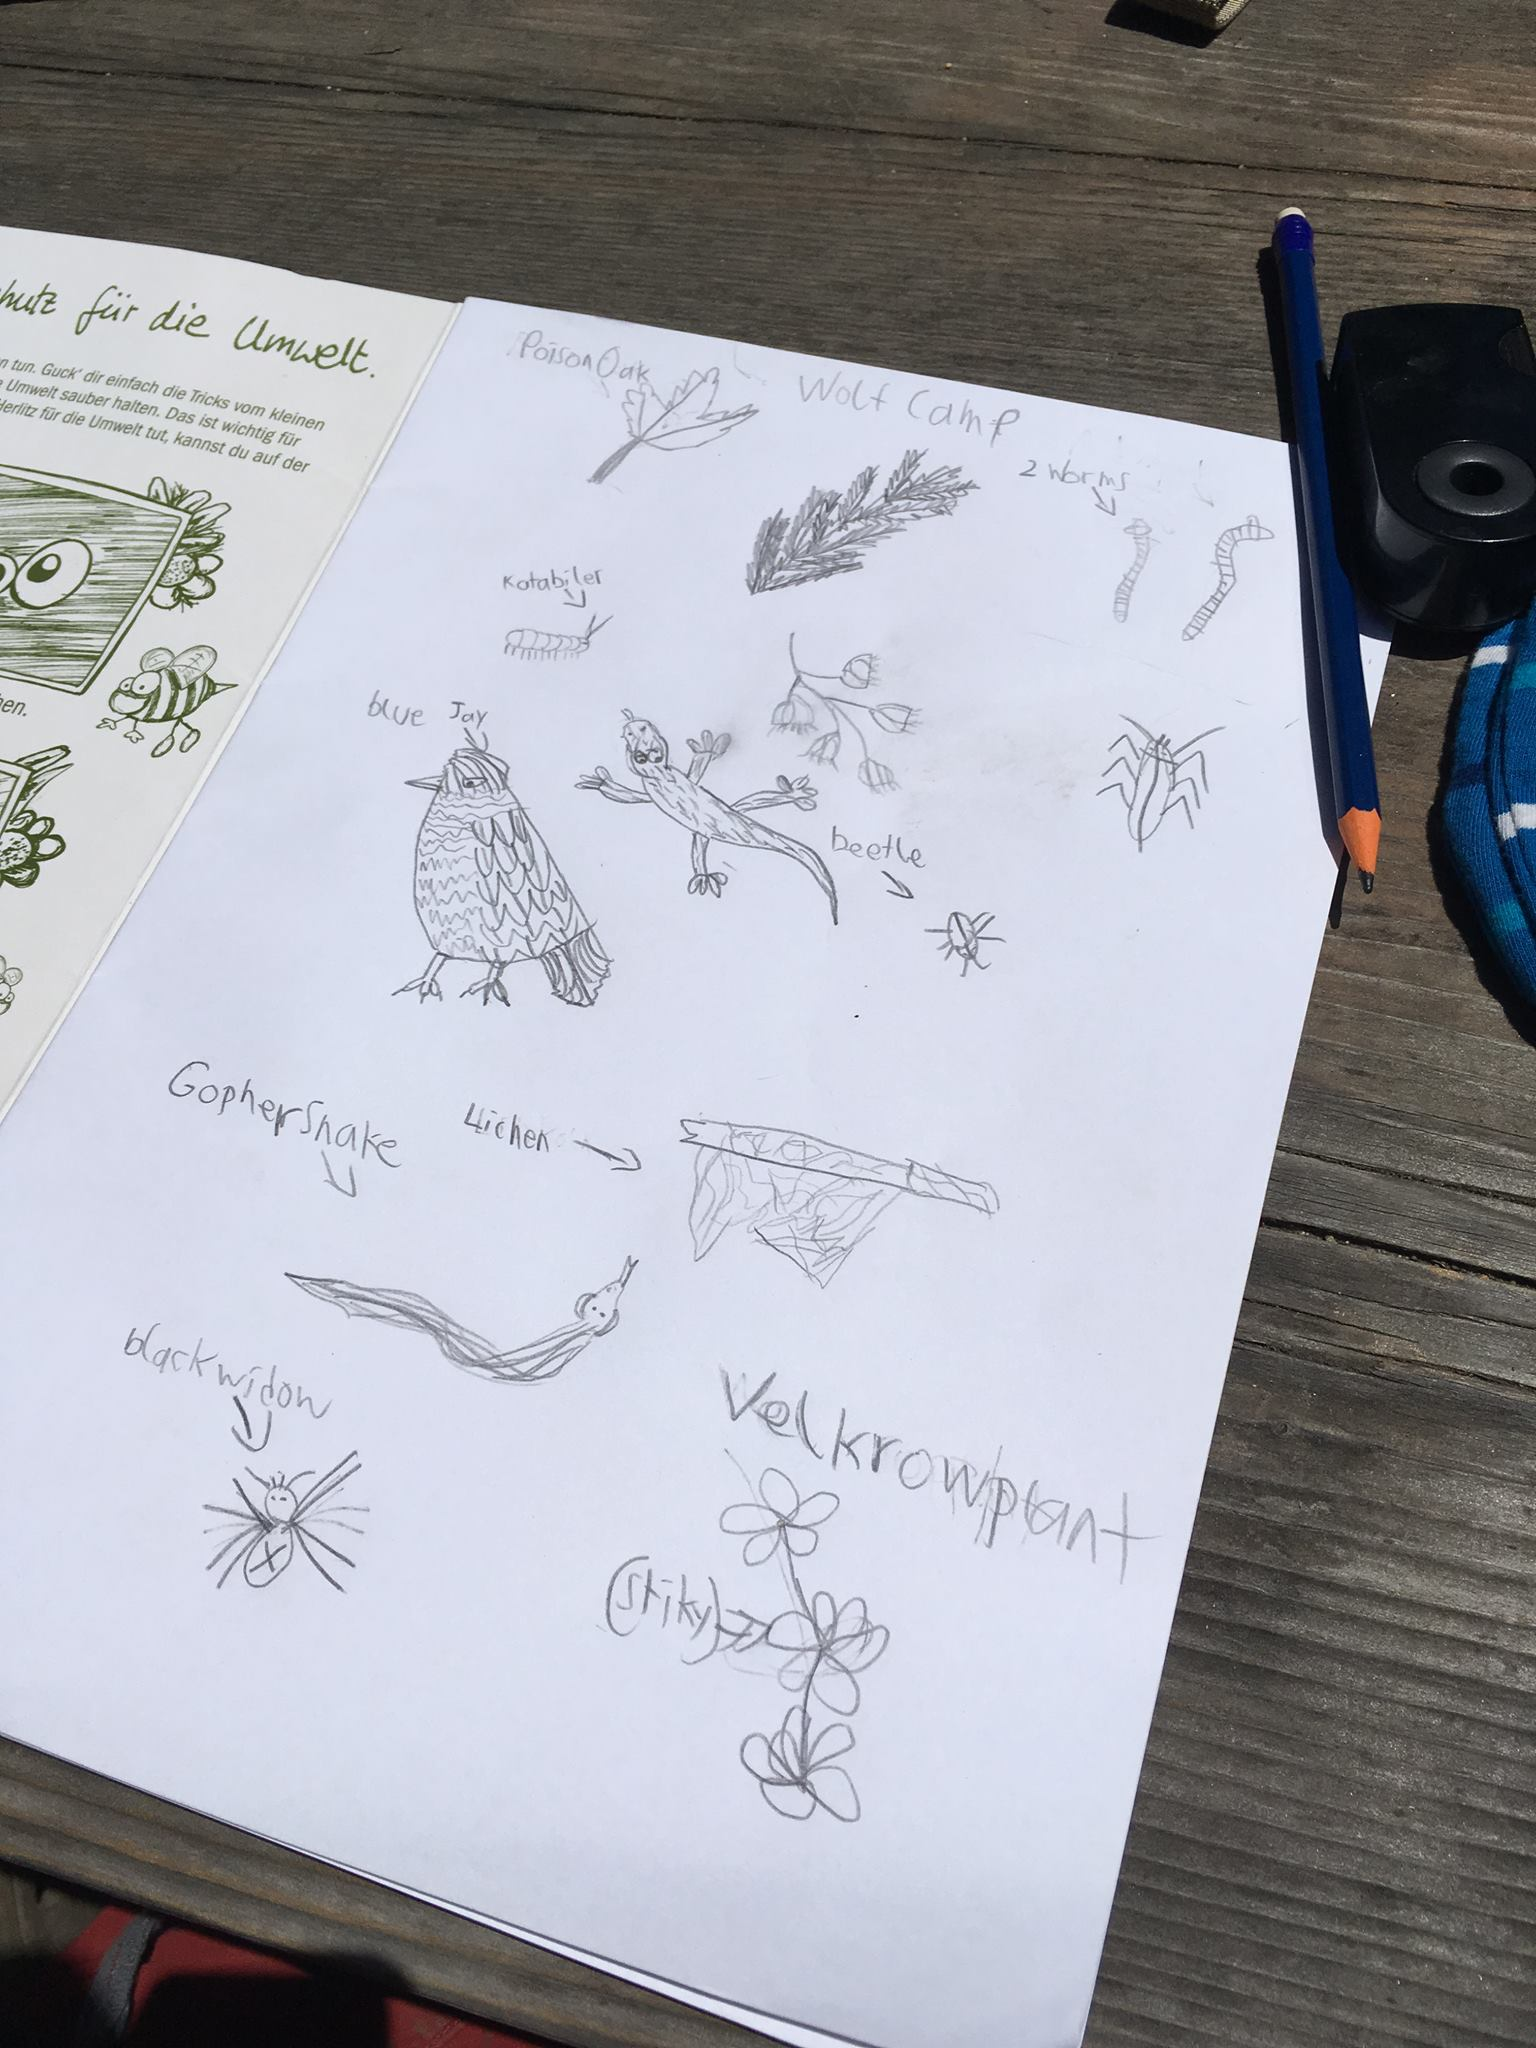 6th grade student's pencil drawings of sights in nature during WOLF School's outdoor science camp.